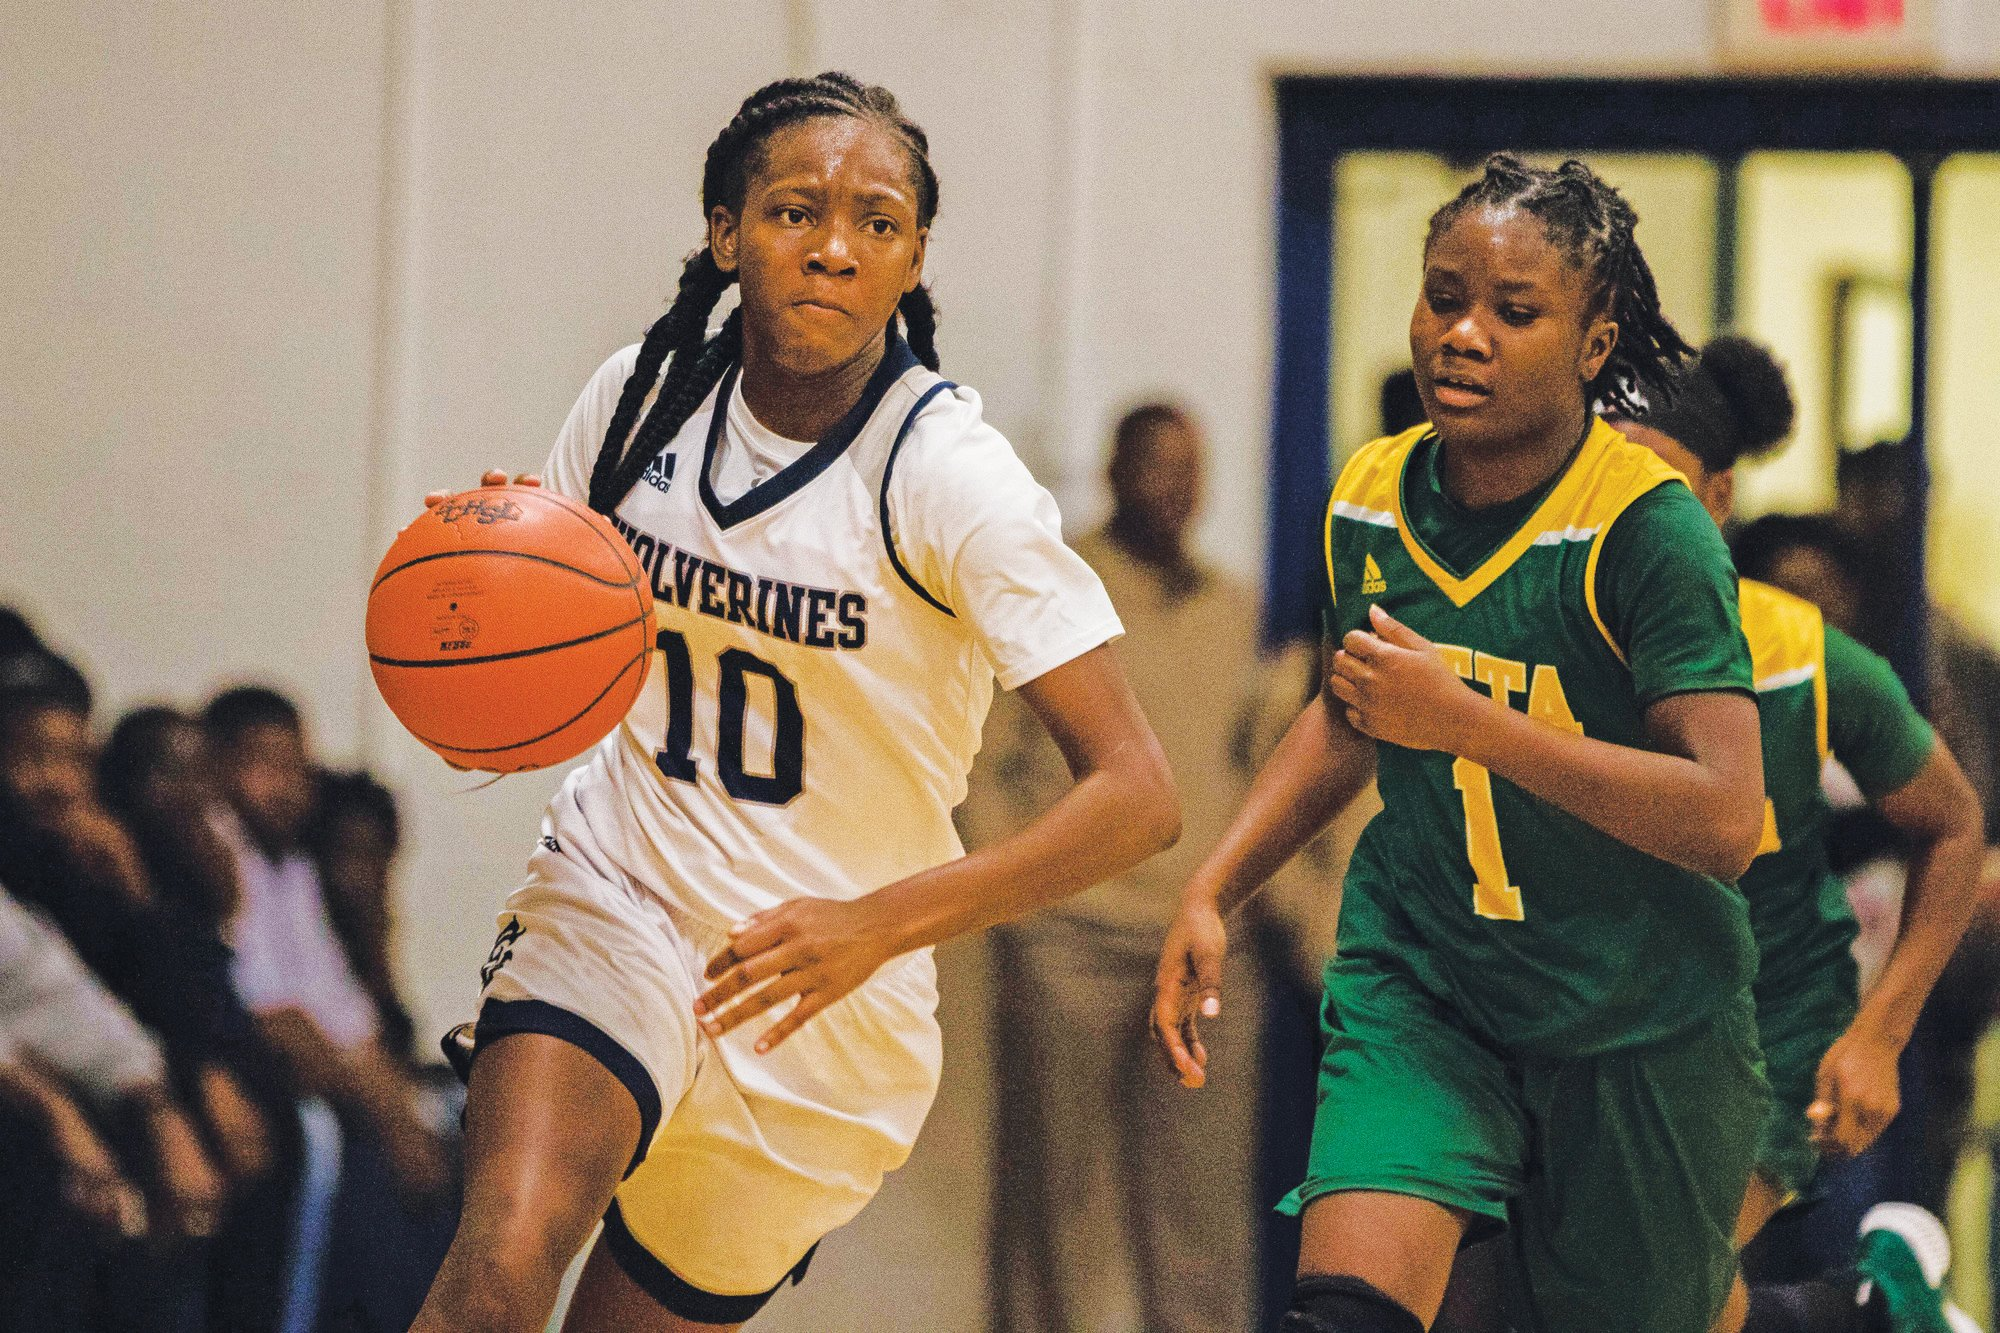 East Clarendon sophomore Talaysia Cooper (10) has been selected as one of the Elite Girls basketball players in the state for the 2019-20 season by the South Carolina Basketball Coaches Association.